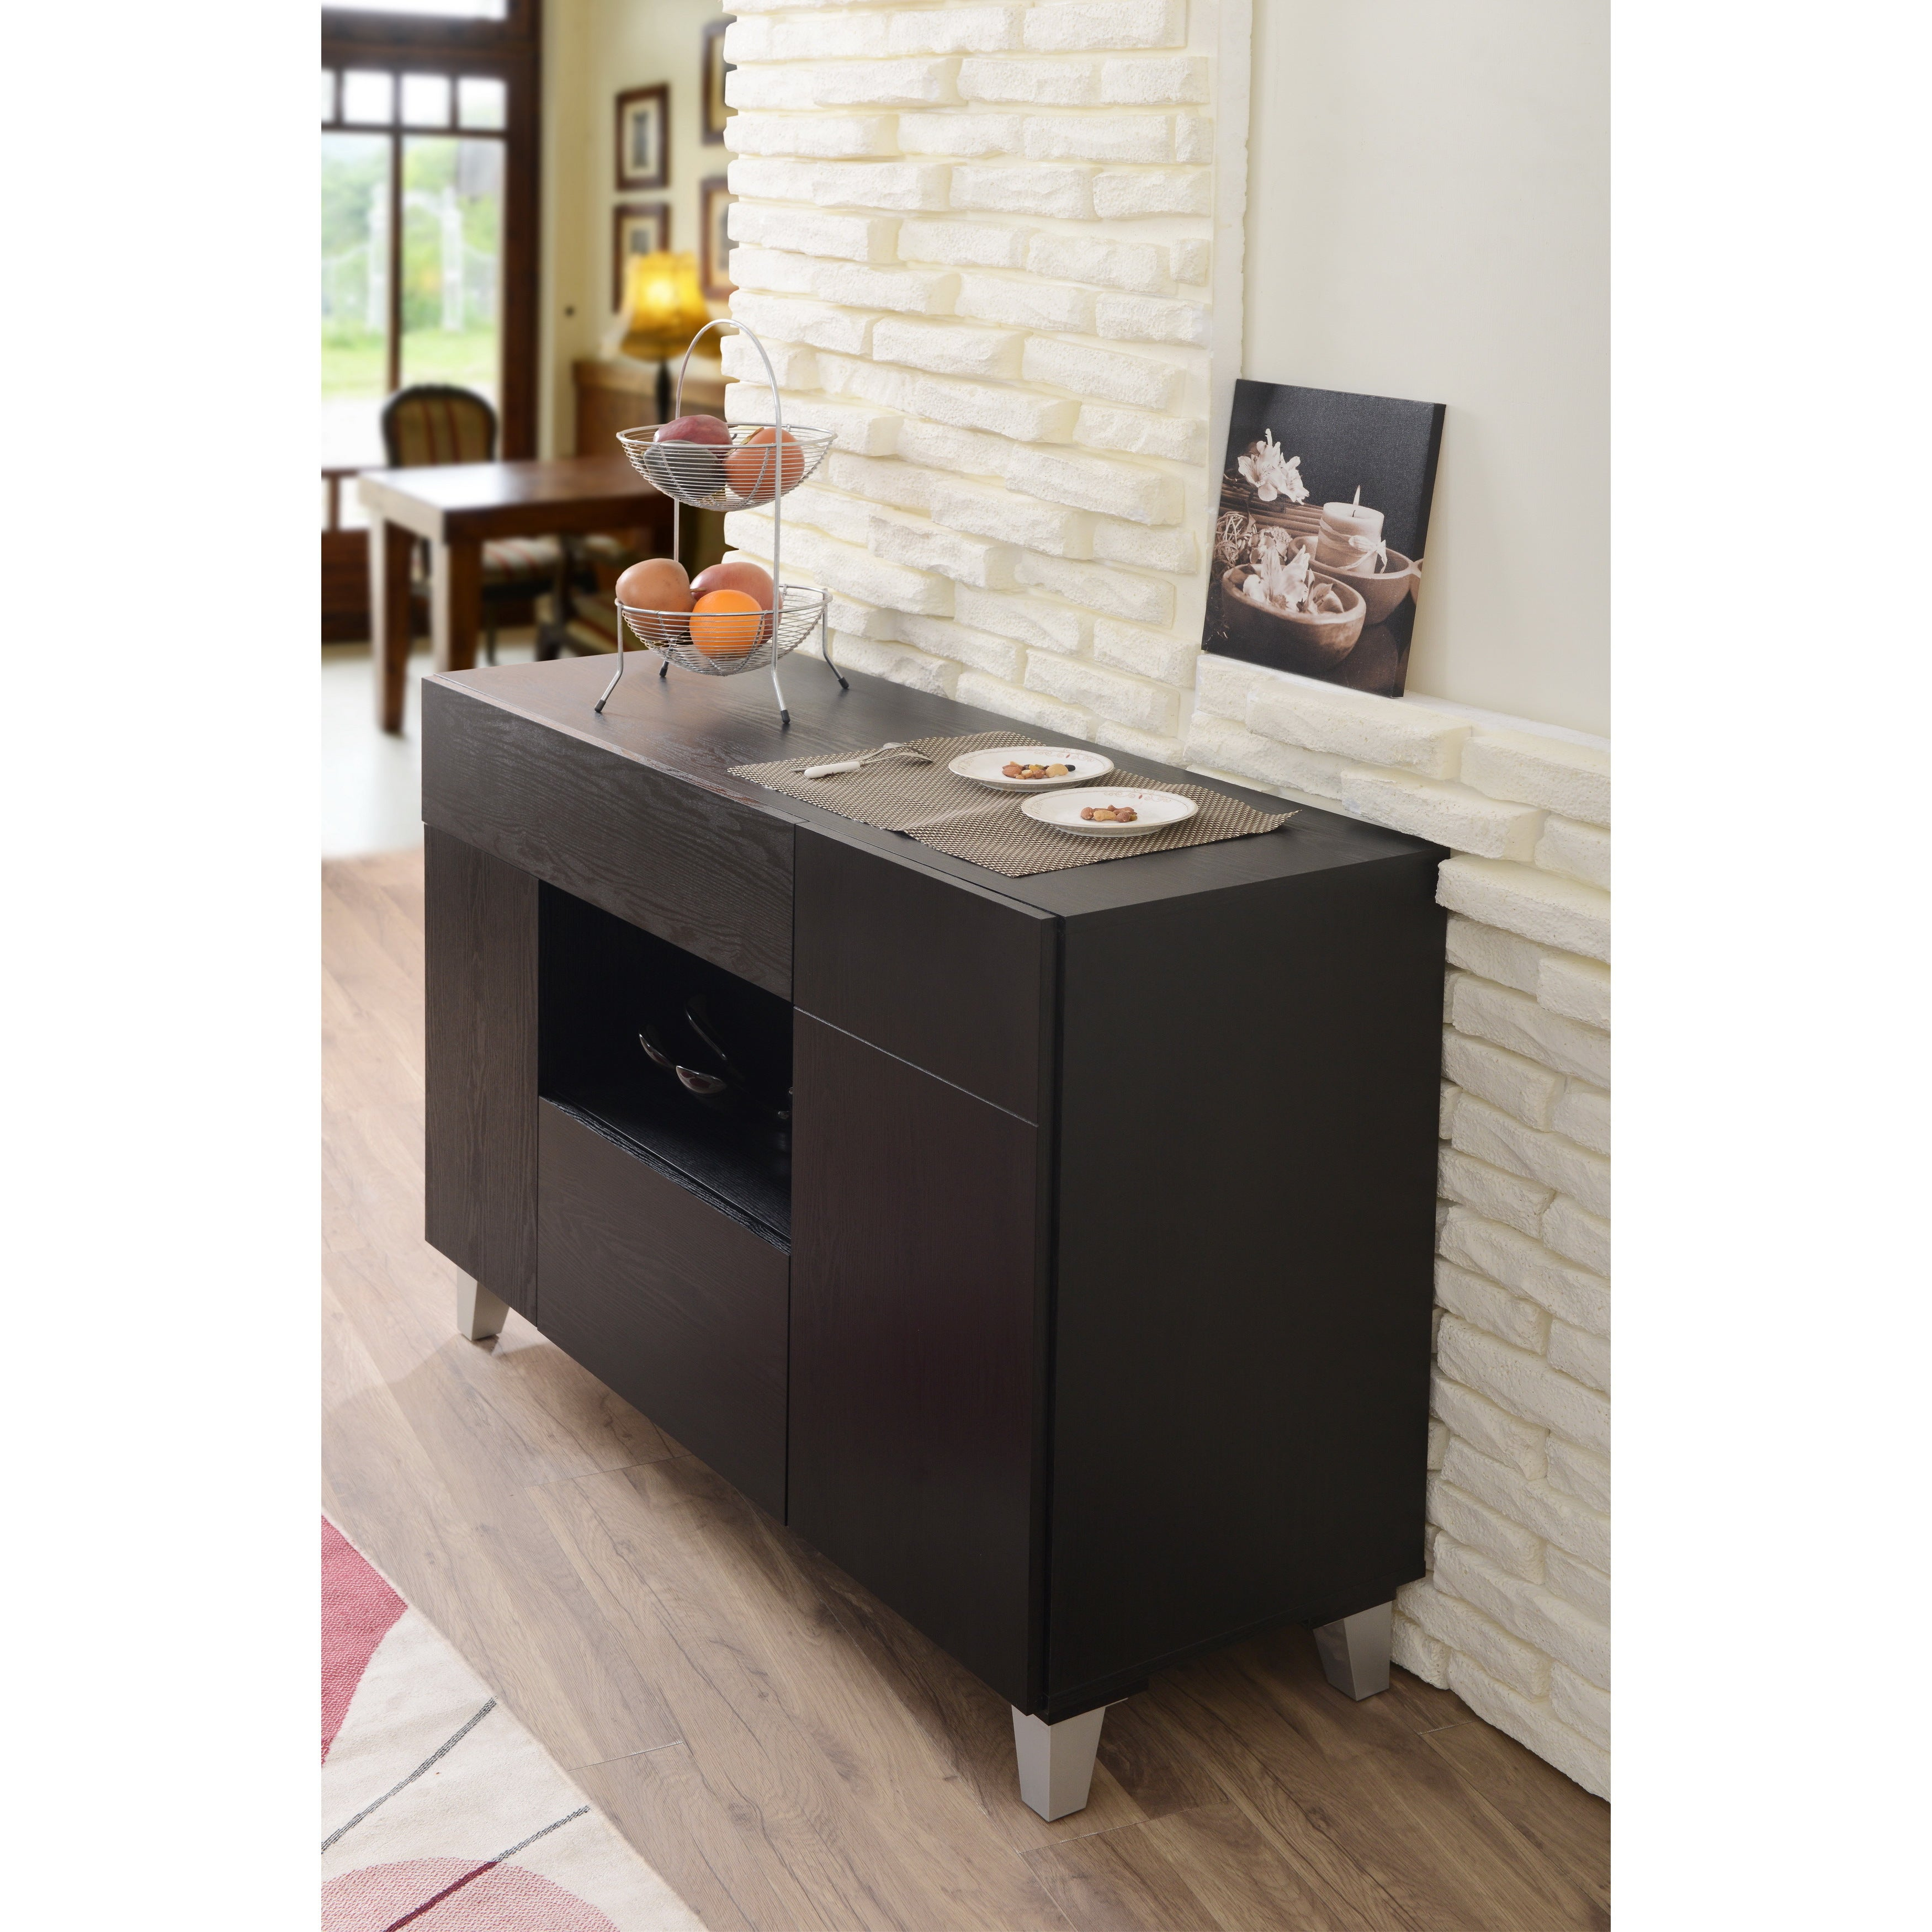 Carrera Contemporary 47 Inch Black Dining Buffet Storage Serverfoa Intended For Carrera Contemporary Black Dining Buffets (View 6 of 30)